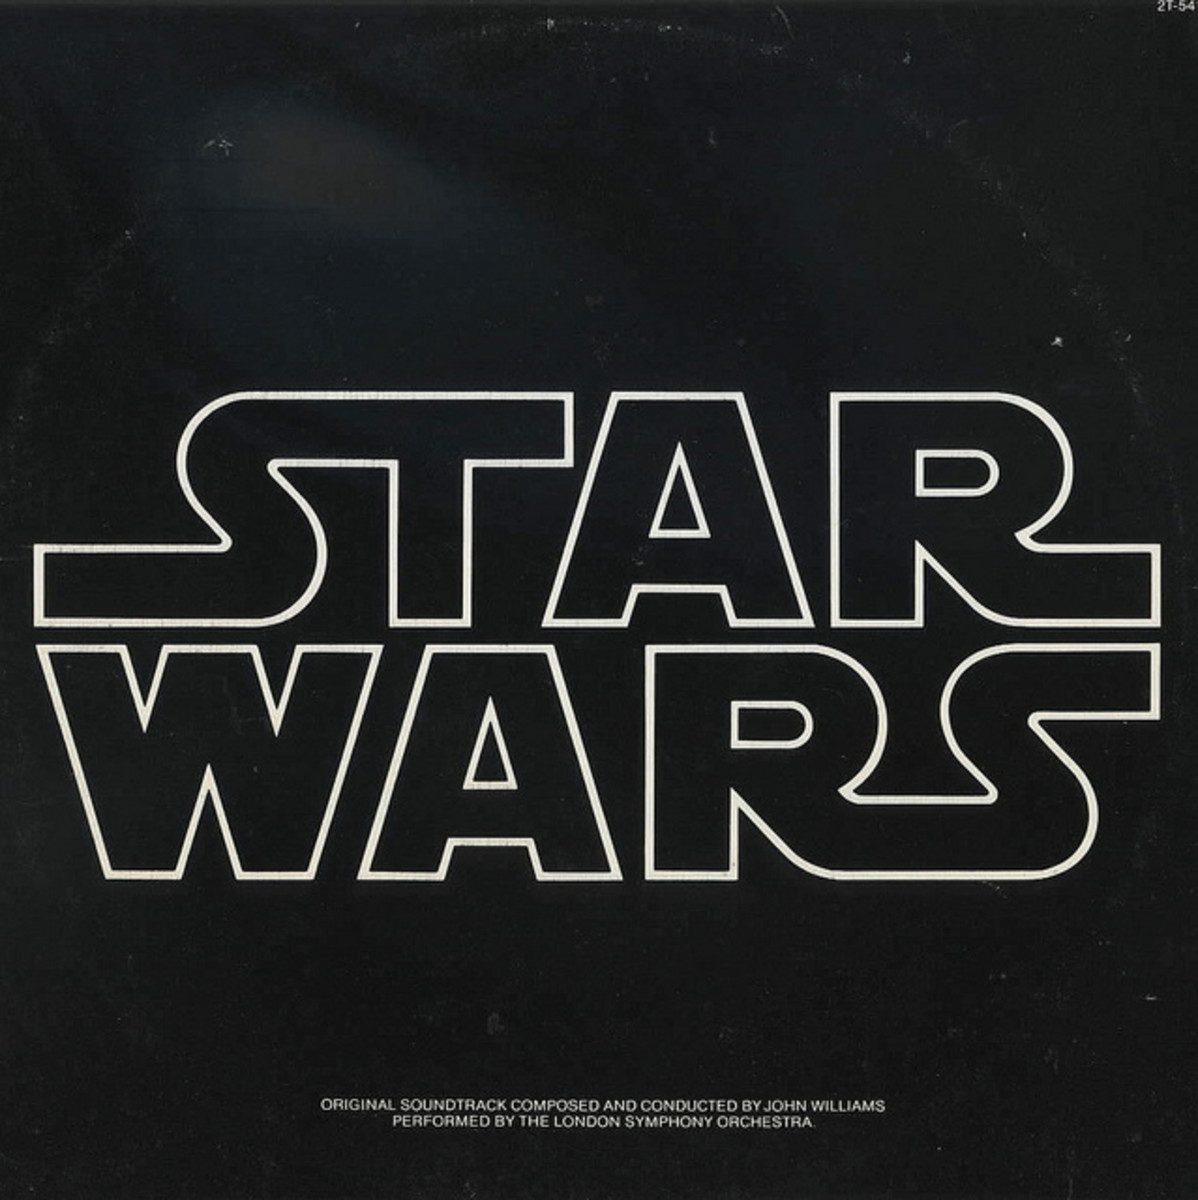 Star Wars & The Vinyl Record